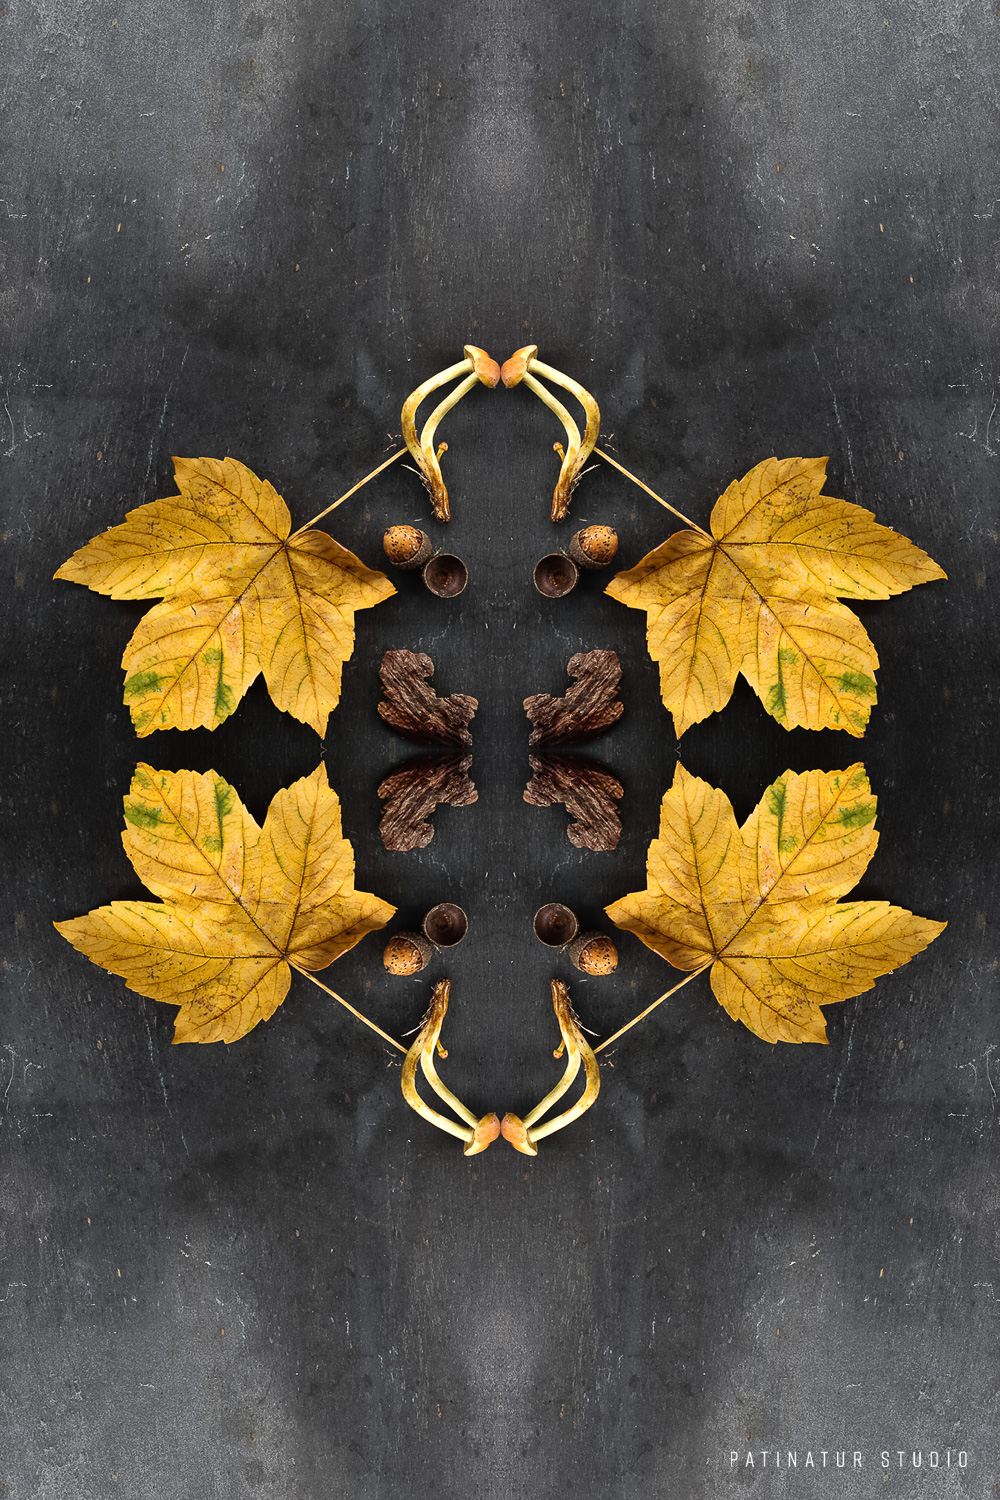 Photo art | Botanical caleidoscope in yellow and brown